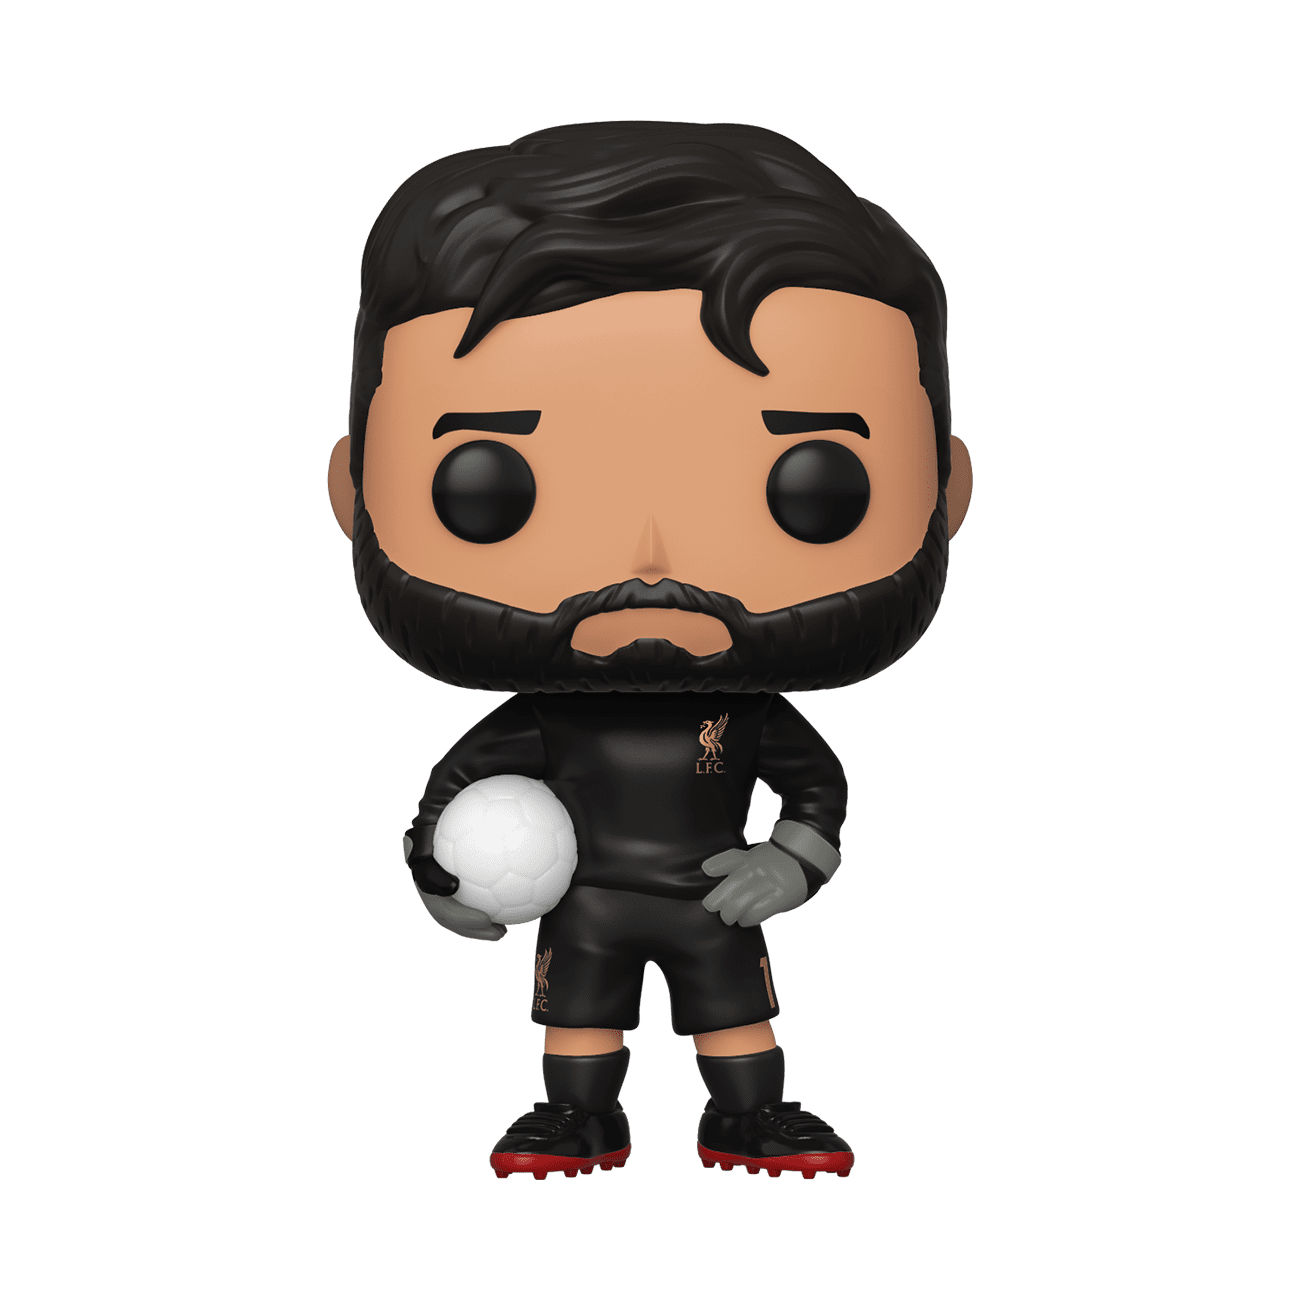 42787_Football_AlissonBecker_Liverpool_POP_GLAM-WEB.png